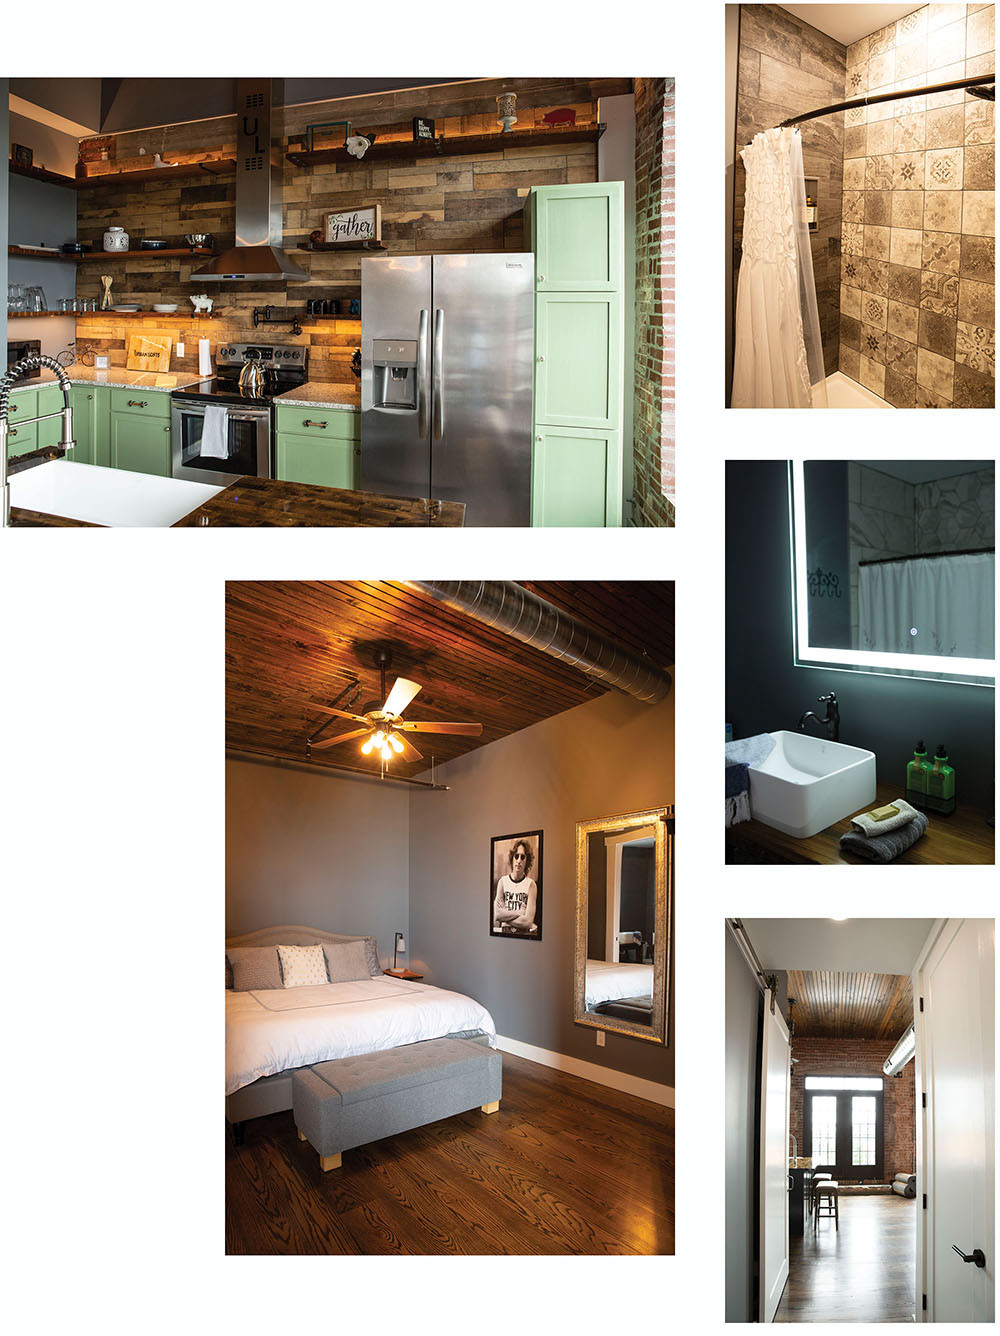 collage of urban loft suites full service kitchen comfy bedroom and bathroom with hip decor and led mirrors